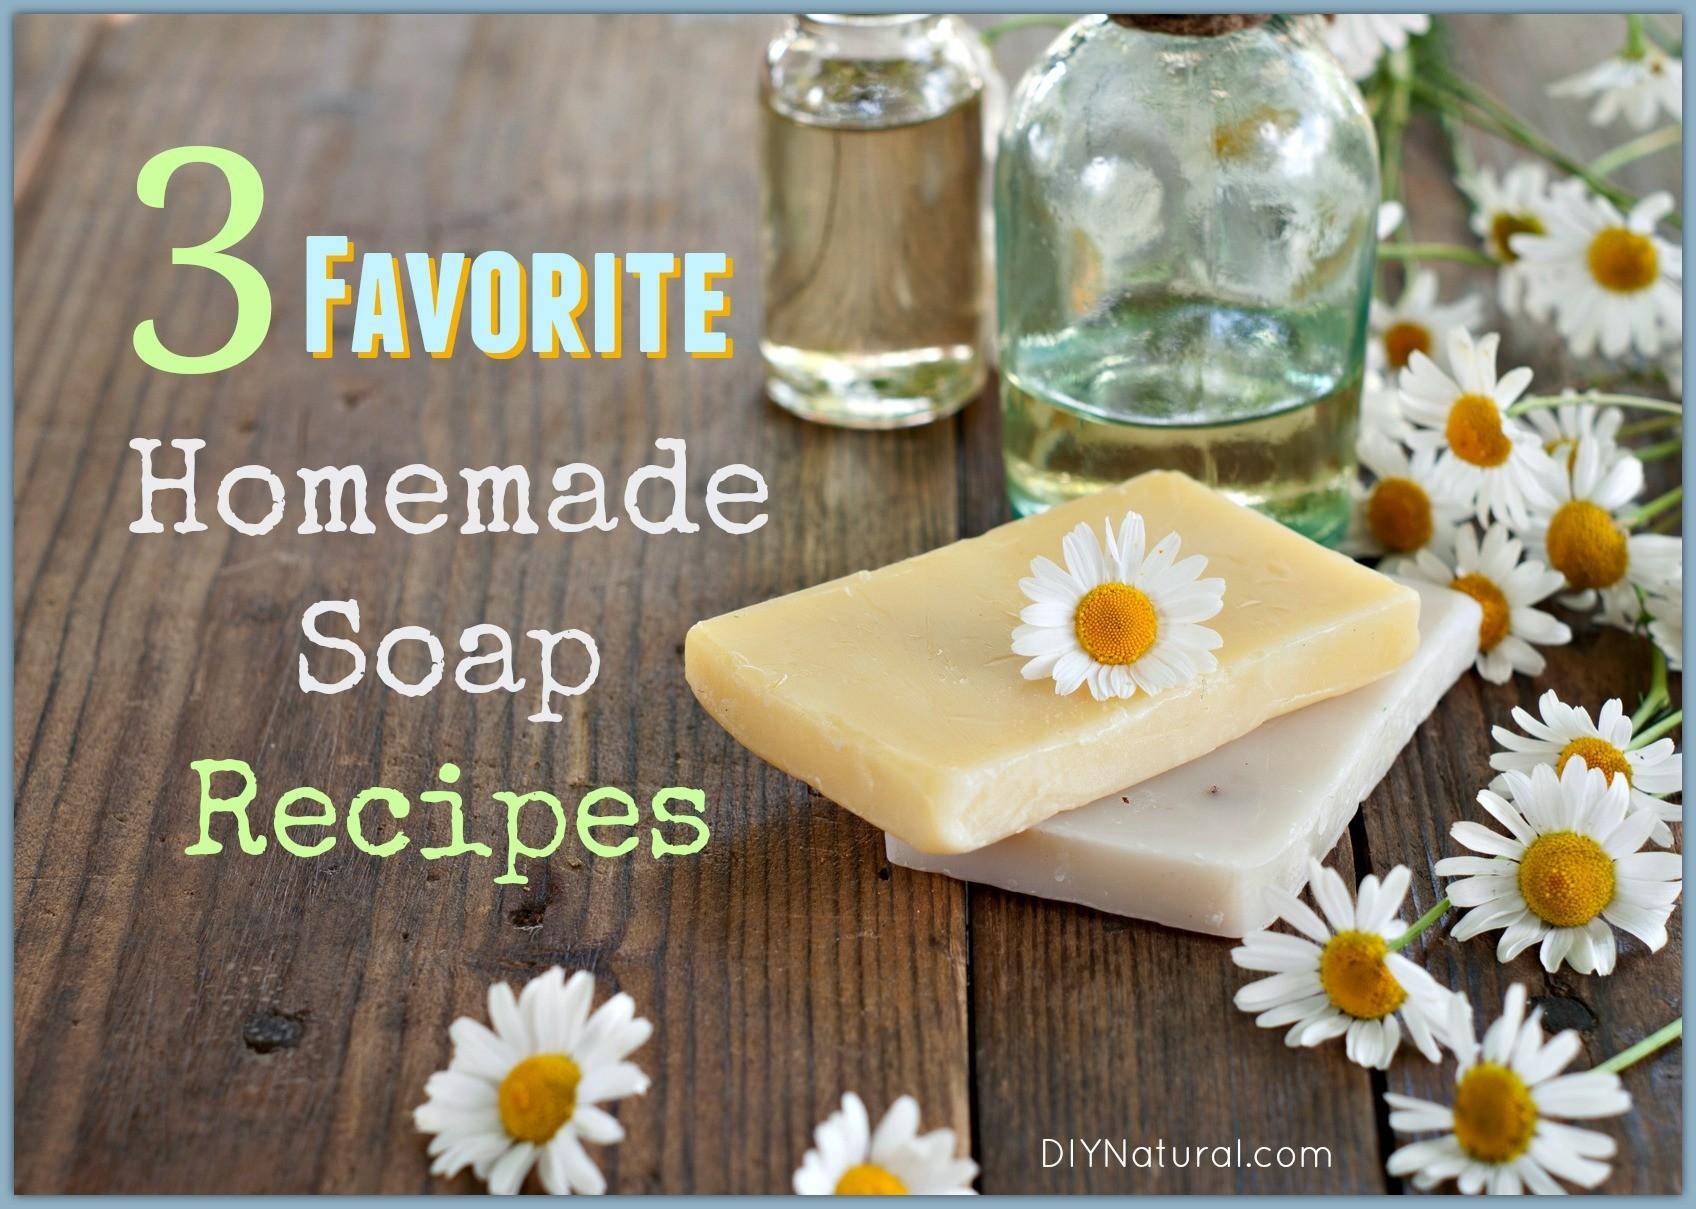 Soap Recipes Our Three Favorite Homemade